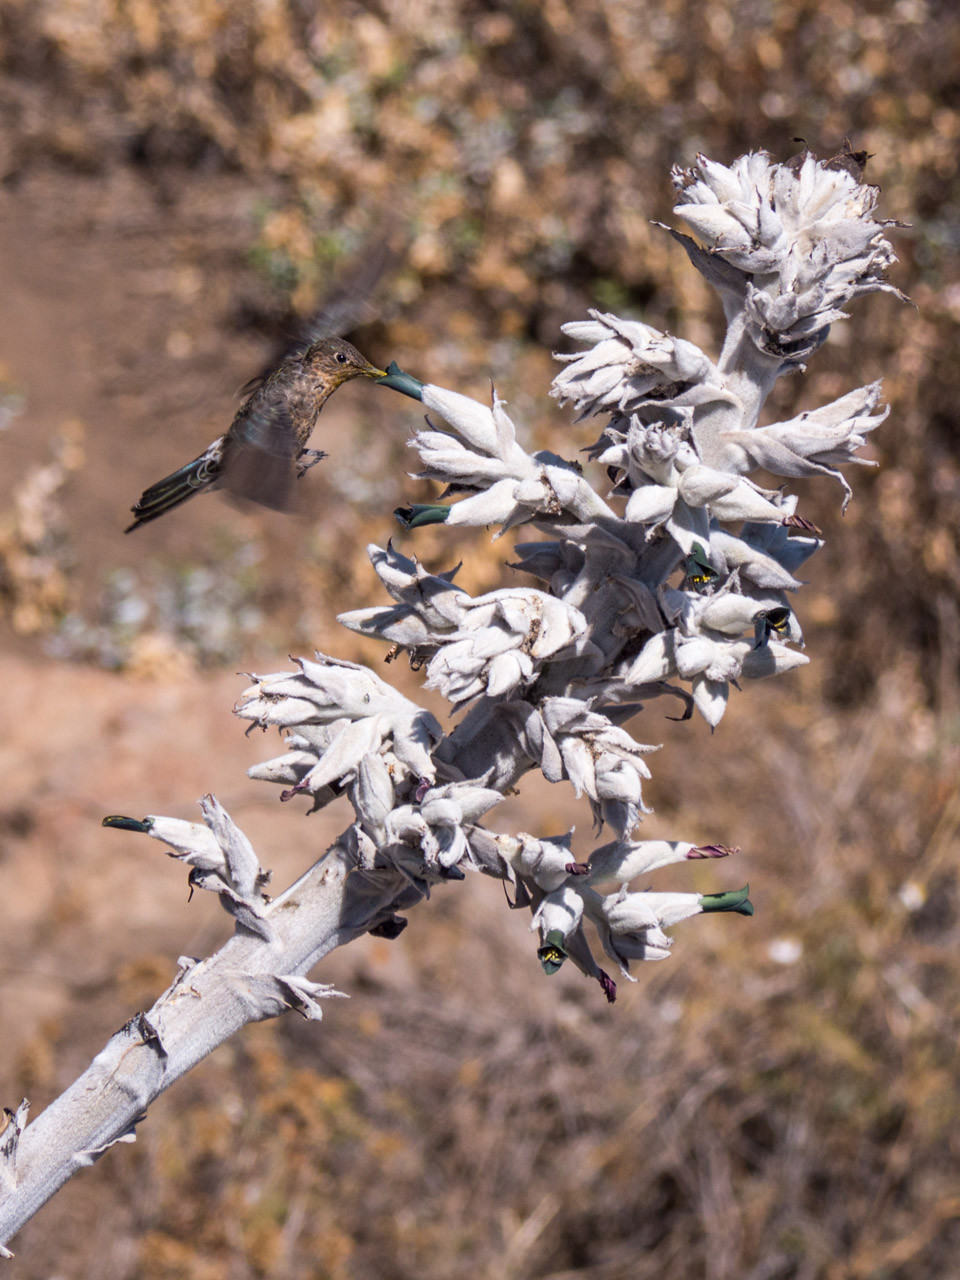 Giant hummingbird at Colca canyon, Mirador Cruz del Condor